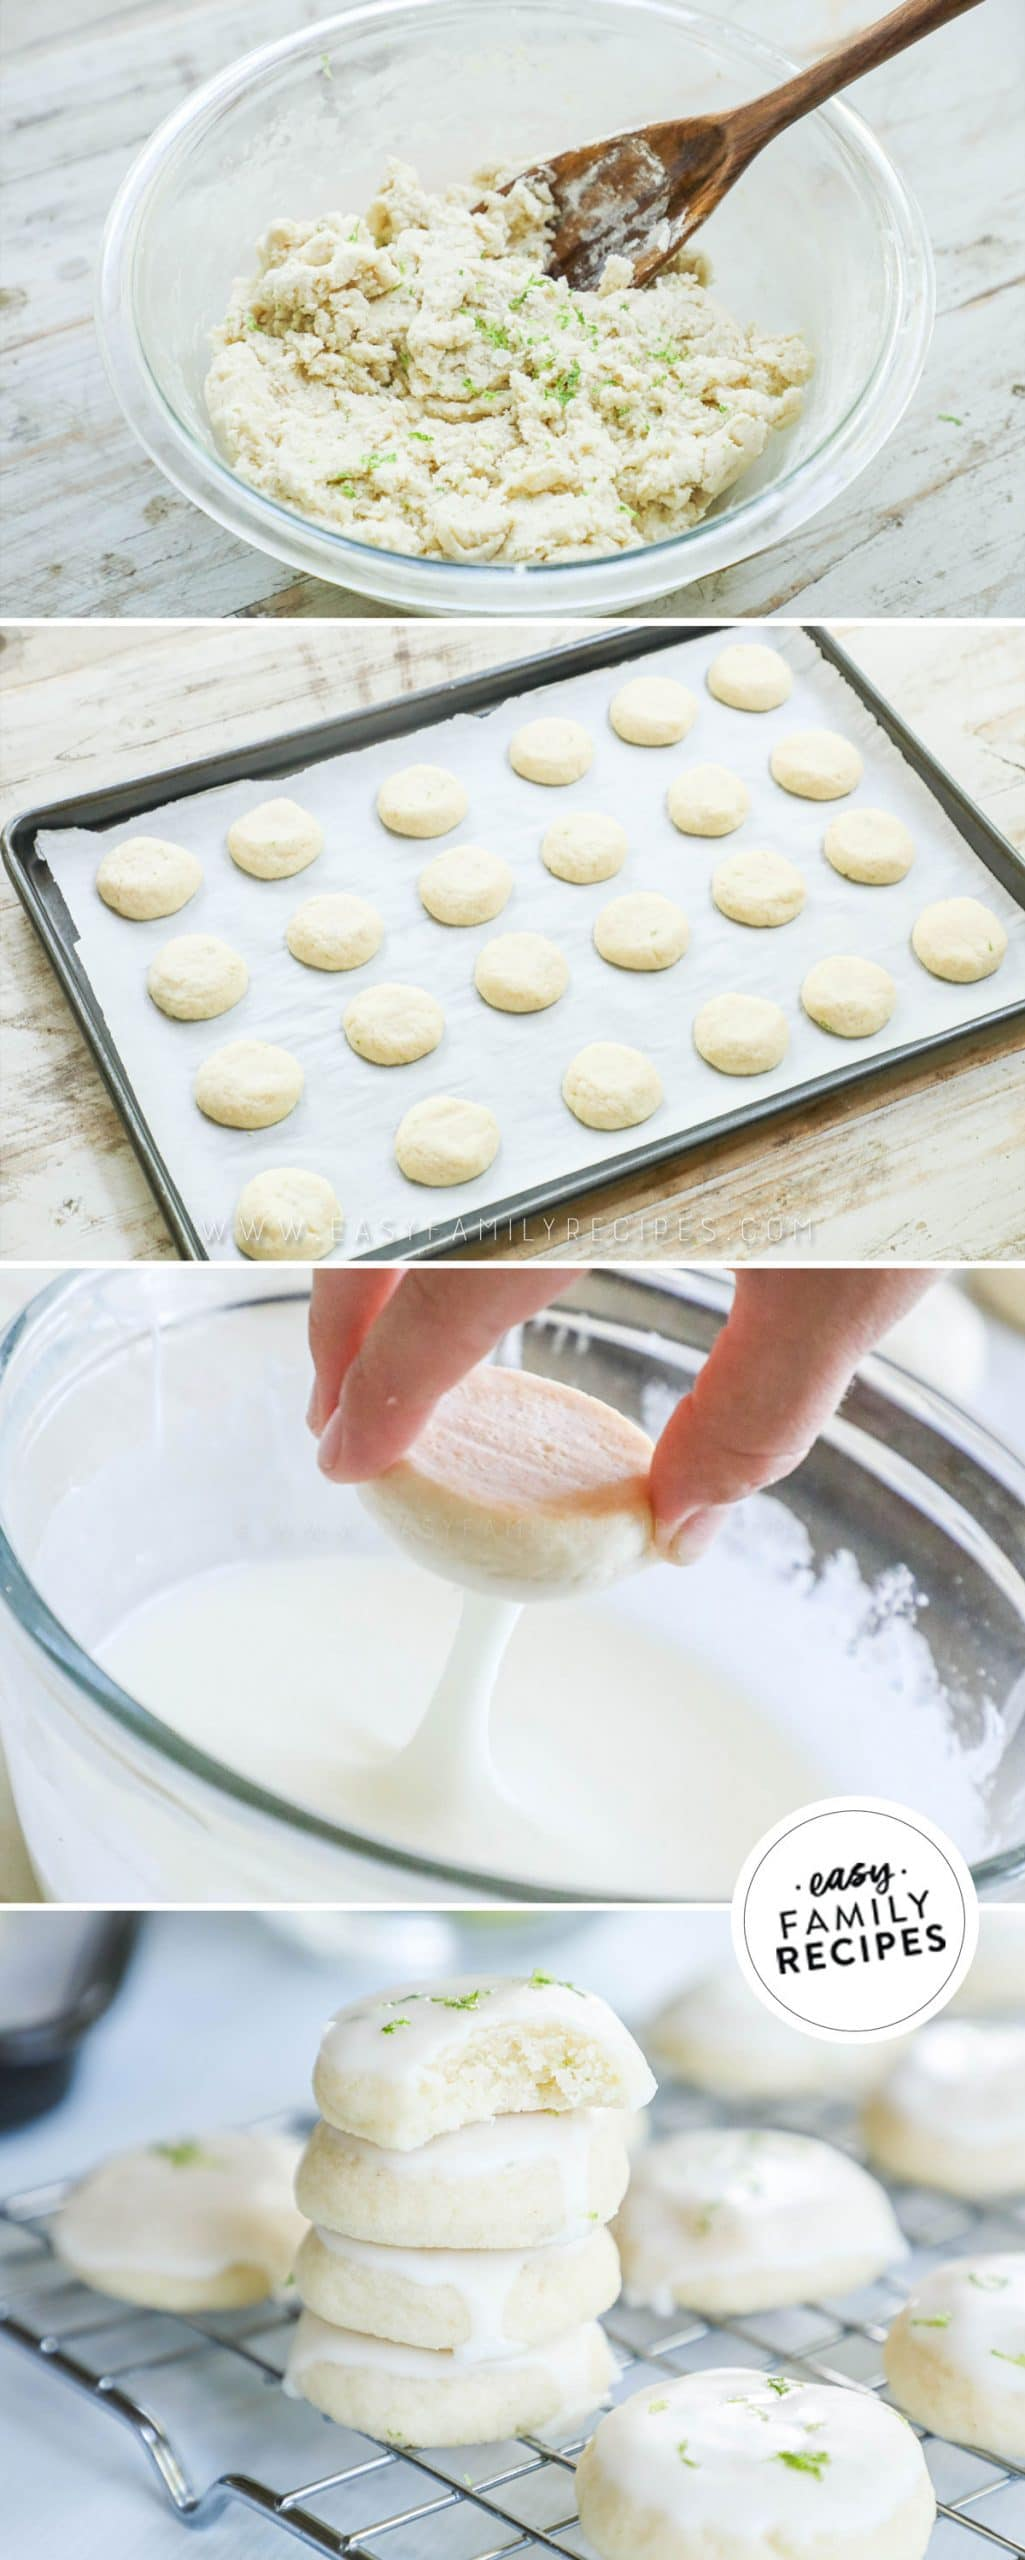 Process photos for how to make key lime cookies: 1. Mix the dough 2. Roll into balls, place on baking sheet, bake 3. Dip in glaze.